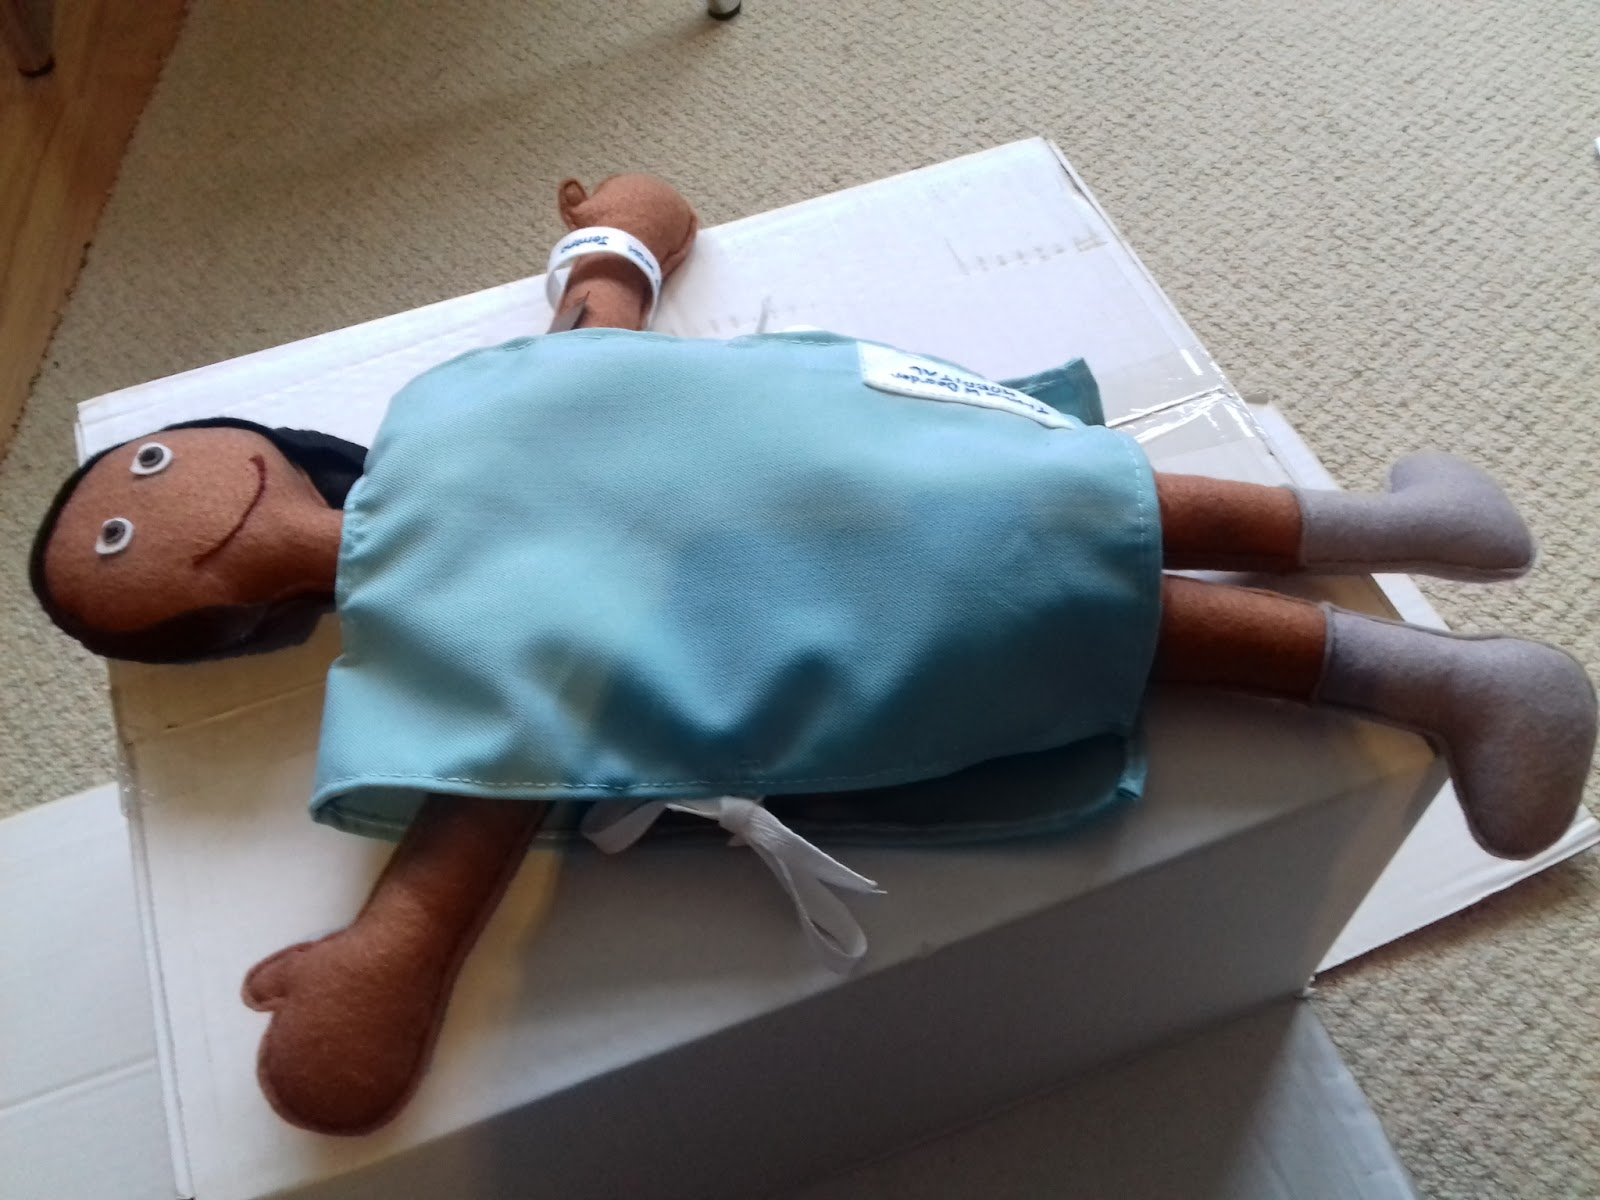 Child\'s medical kit and anatomy doll | Science "|1600|1200|?|en|2|f166c0426da1c3686c3e09bee3c745d2|False|UNLIKELY|0.33773455023765564